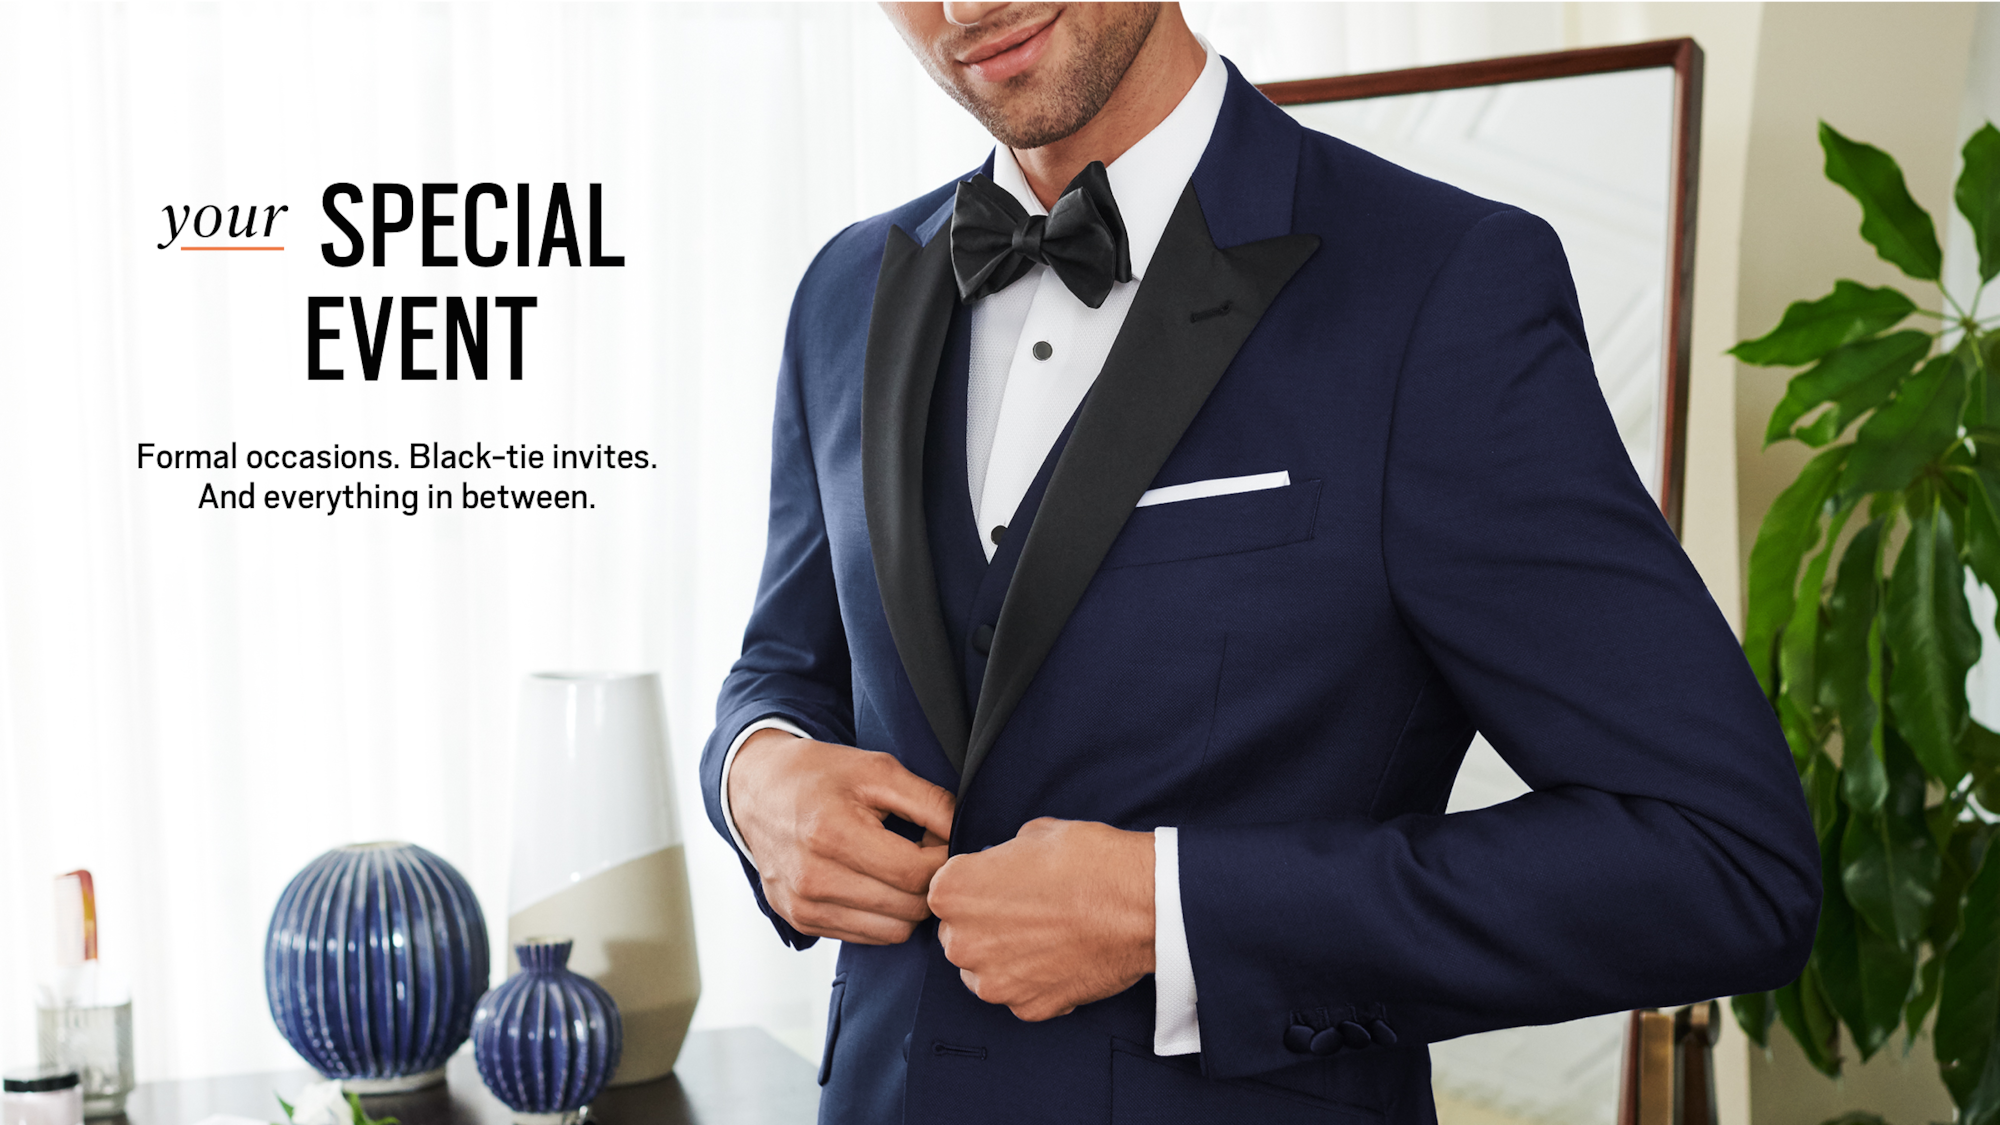 989680afd6 Your special event. Formal occasions. Black-tie invites. And everything in  between